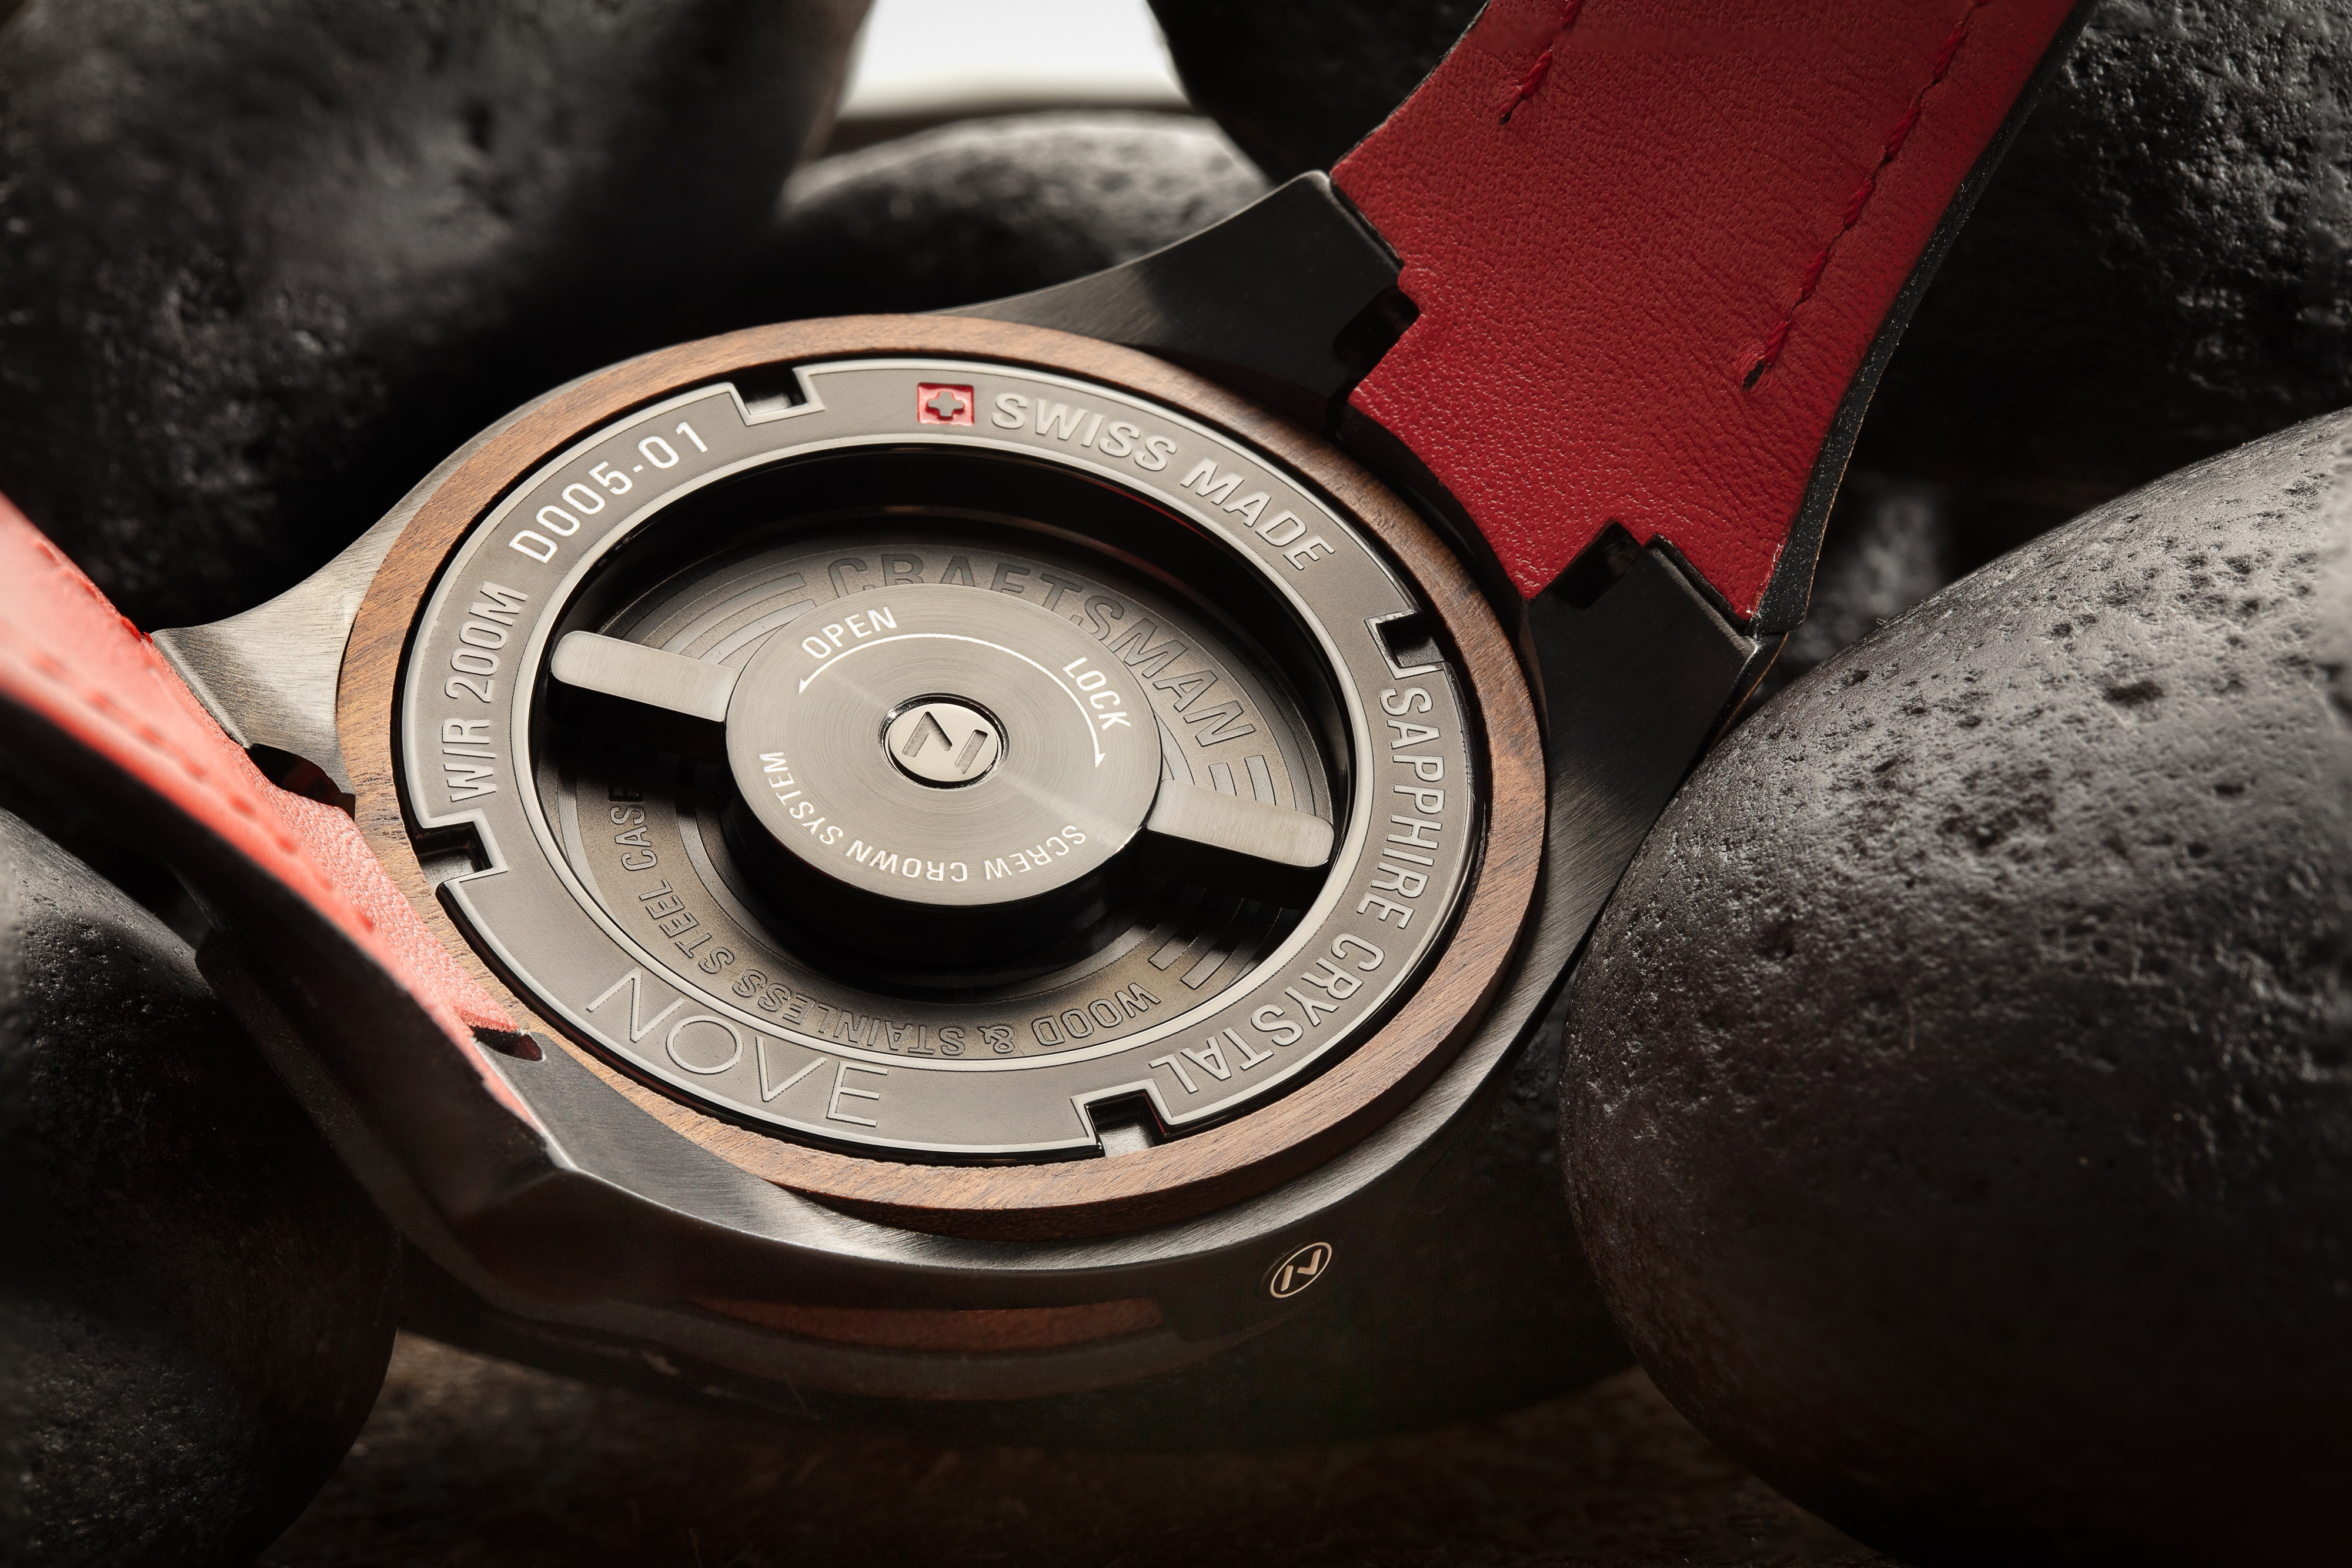 The NOVE Craftsman's signature feature is its specially-designed case back houses a mechanism which allows the user to adjust the minute and hour hands.